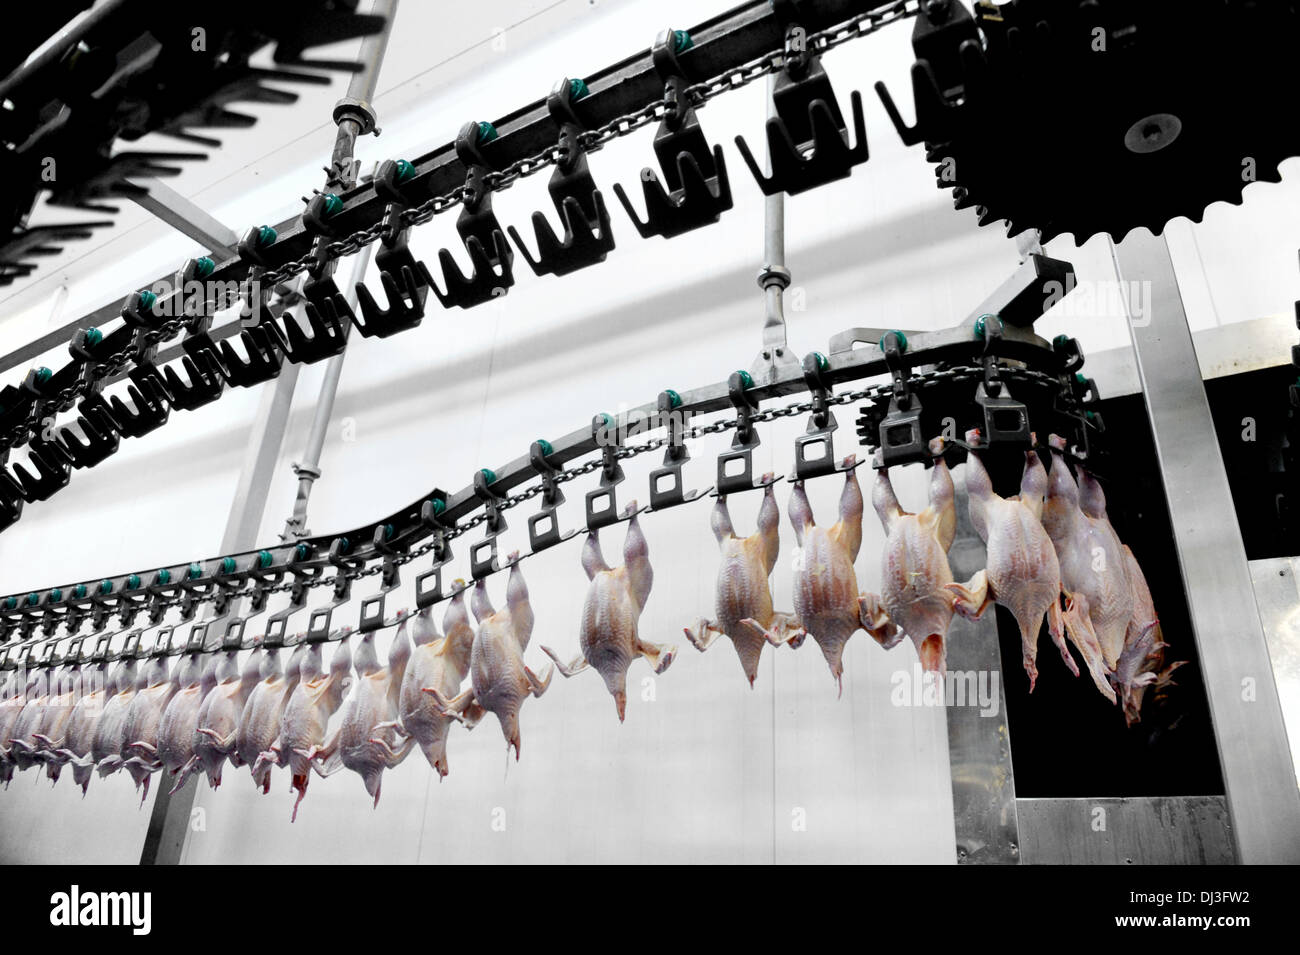 Food industry detail with poultry meat processing - Stock Image